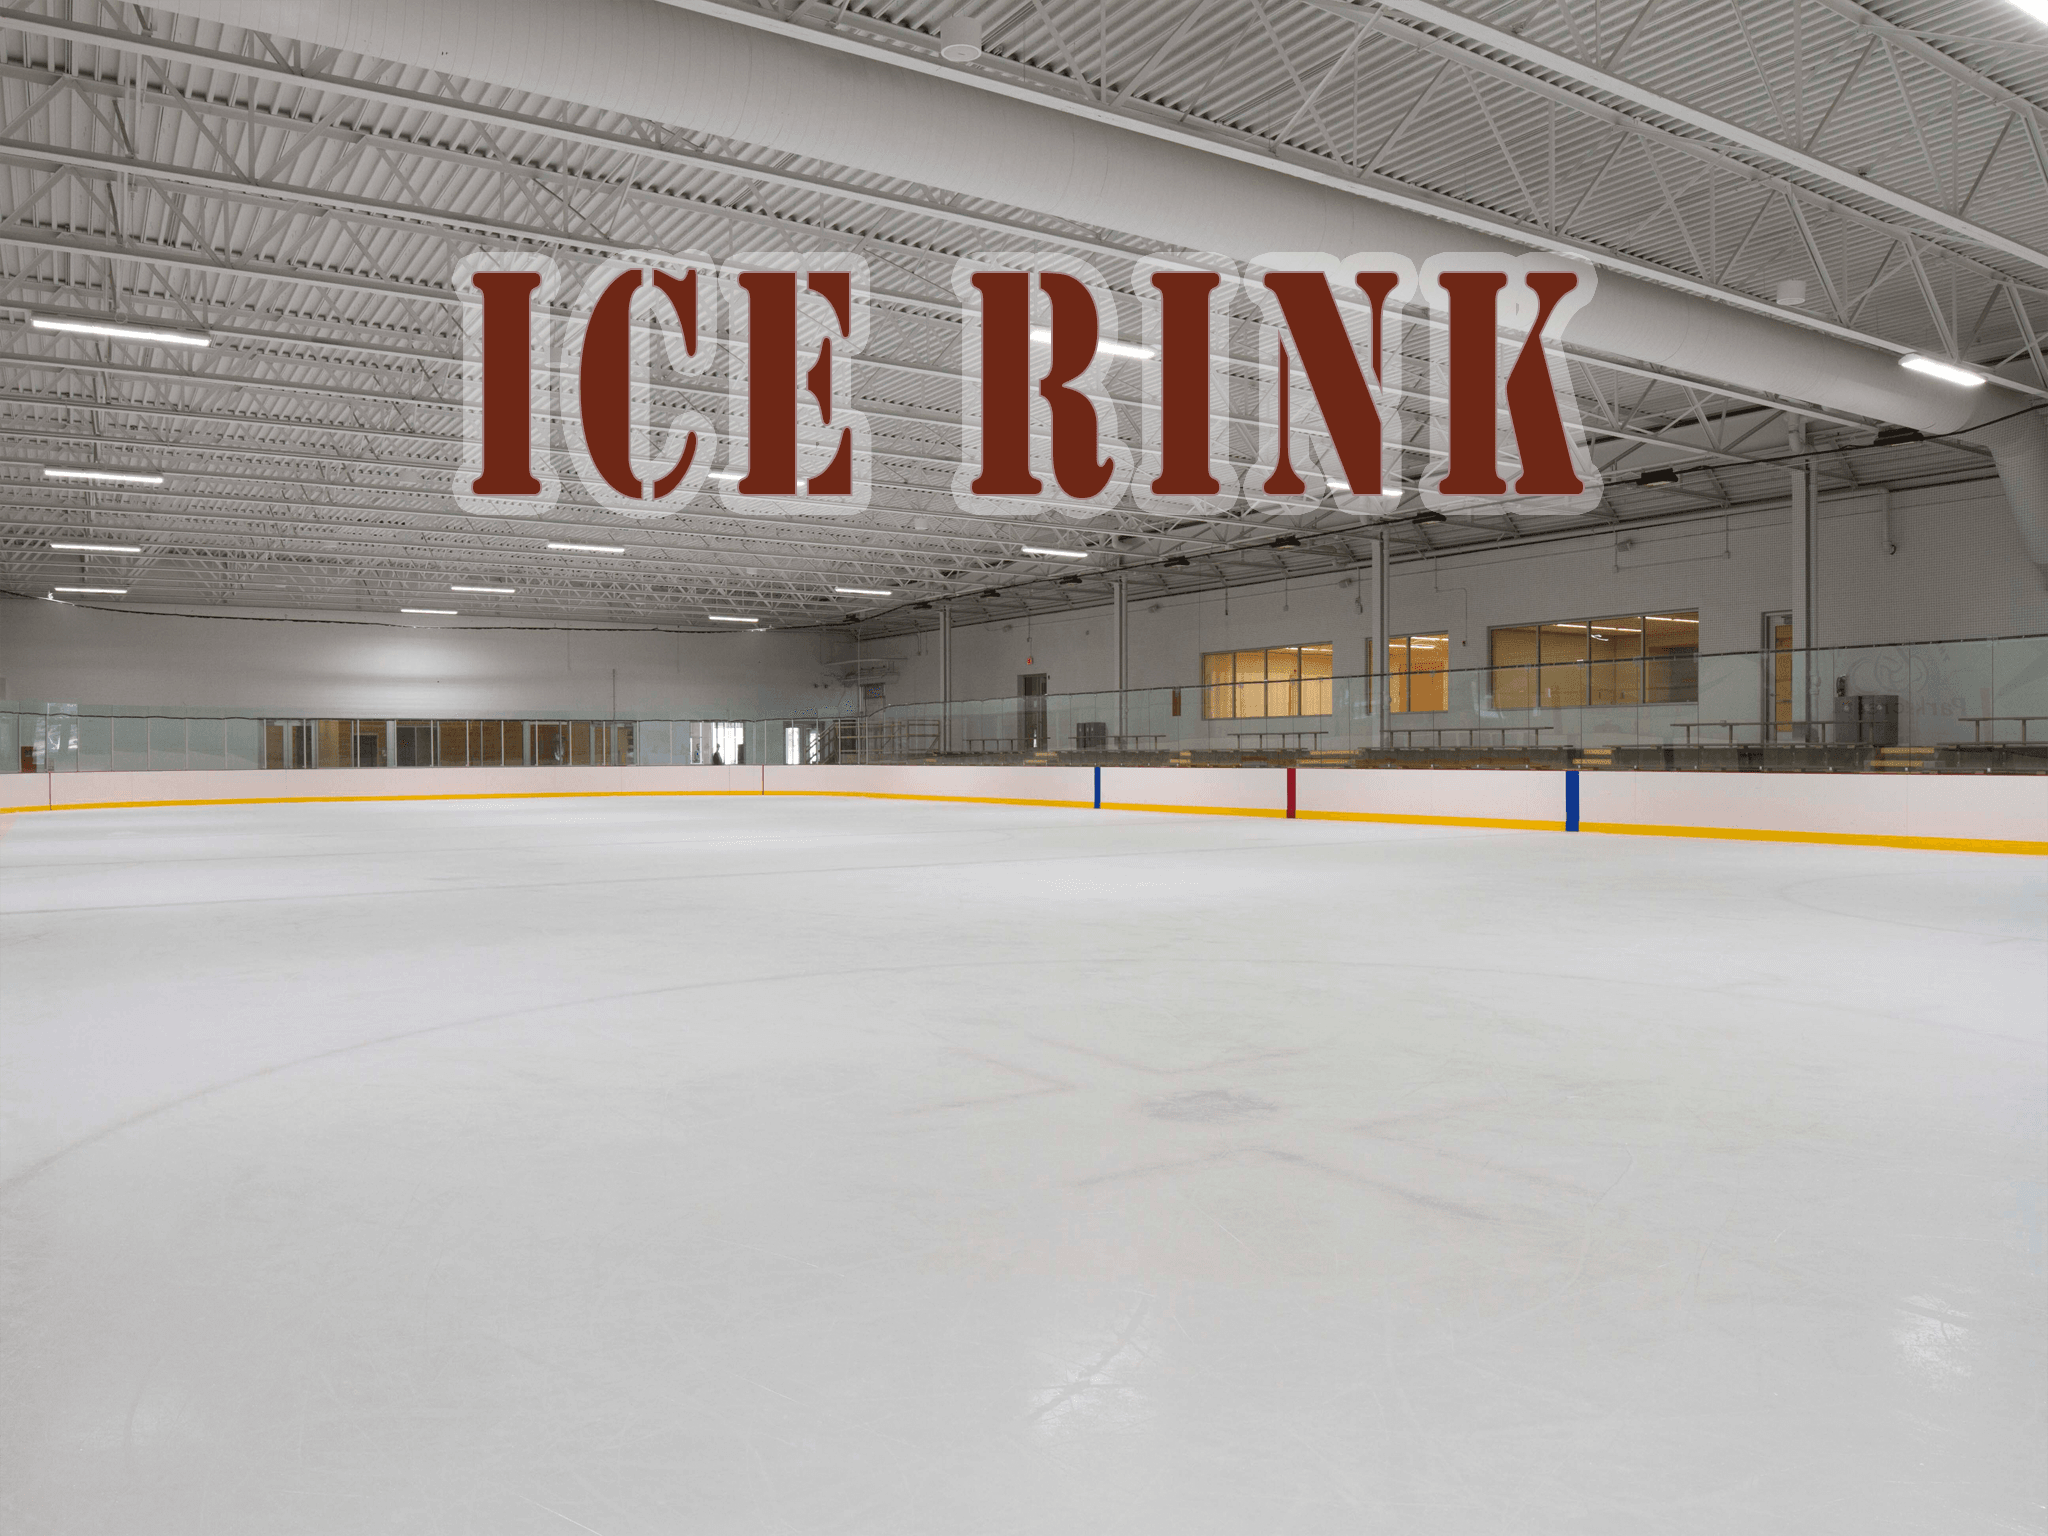 IceRinkGraphic